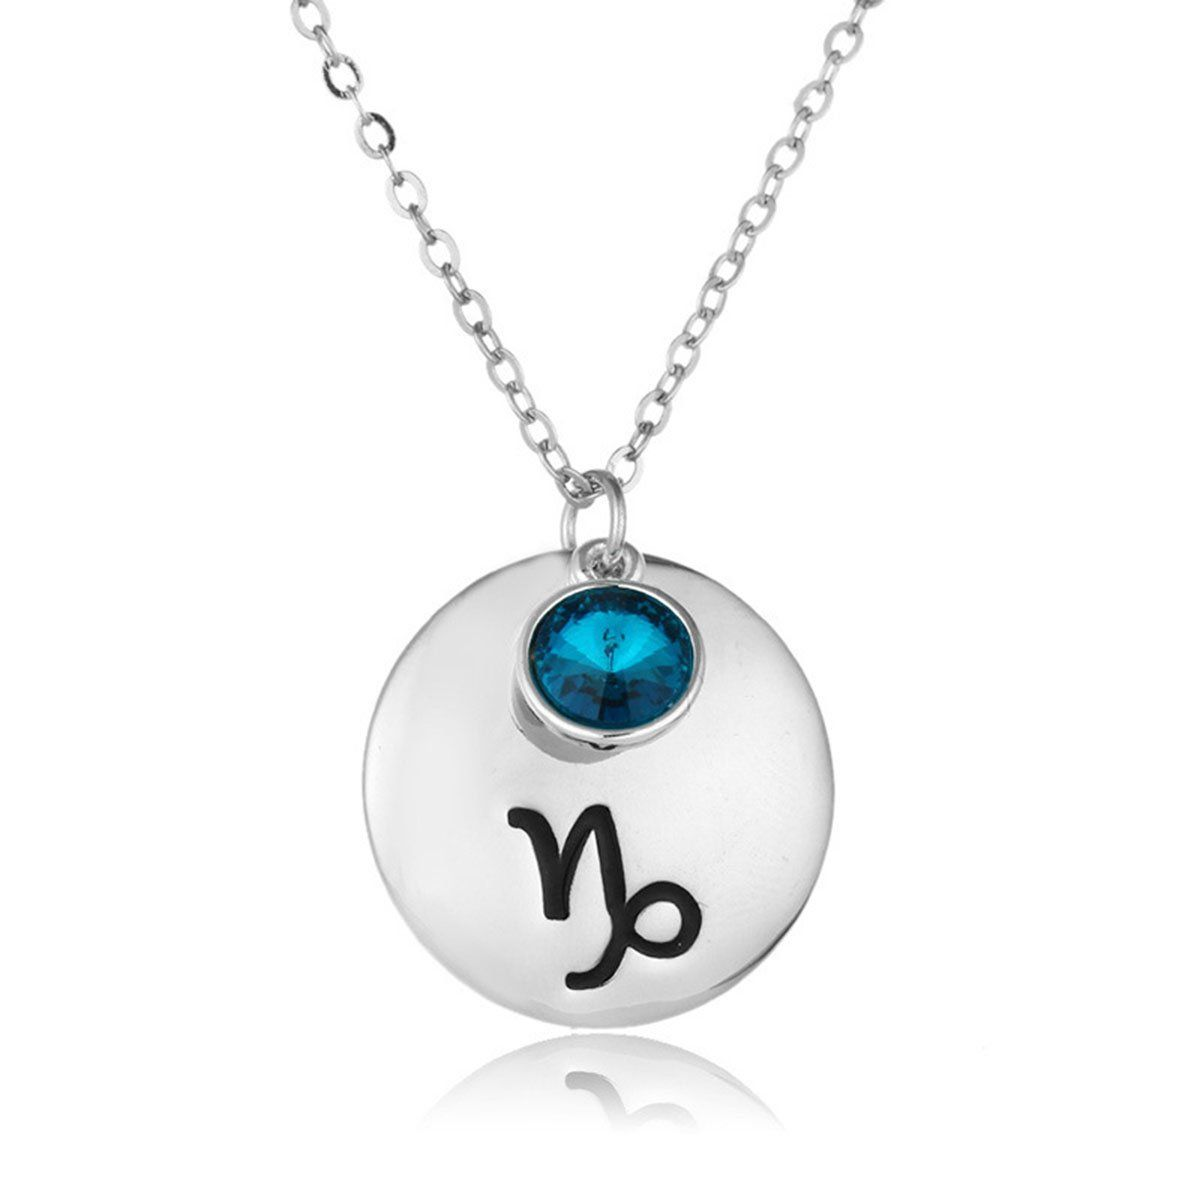 Linsh capricorn horoscope necklace lucky birthstone crystal zodiac